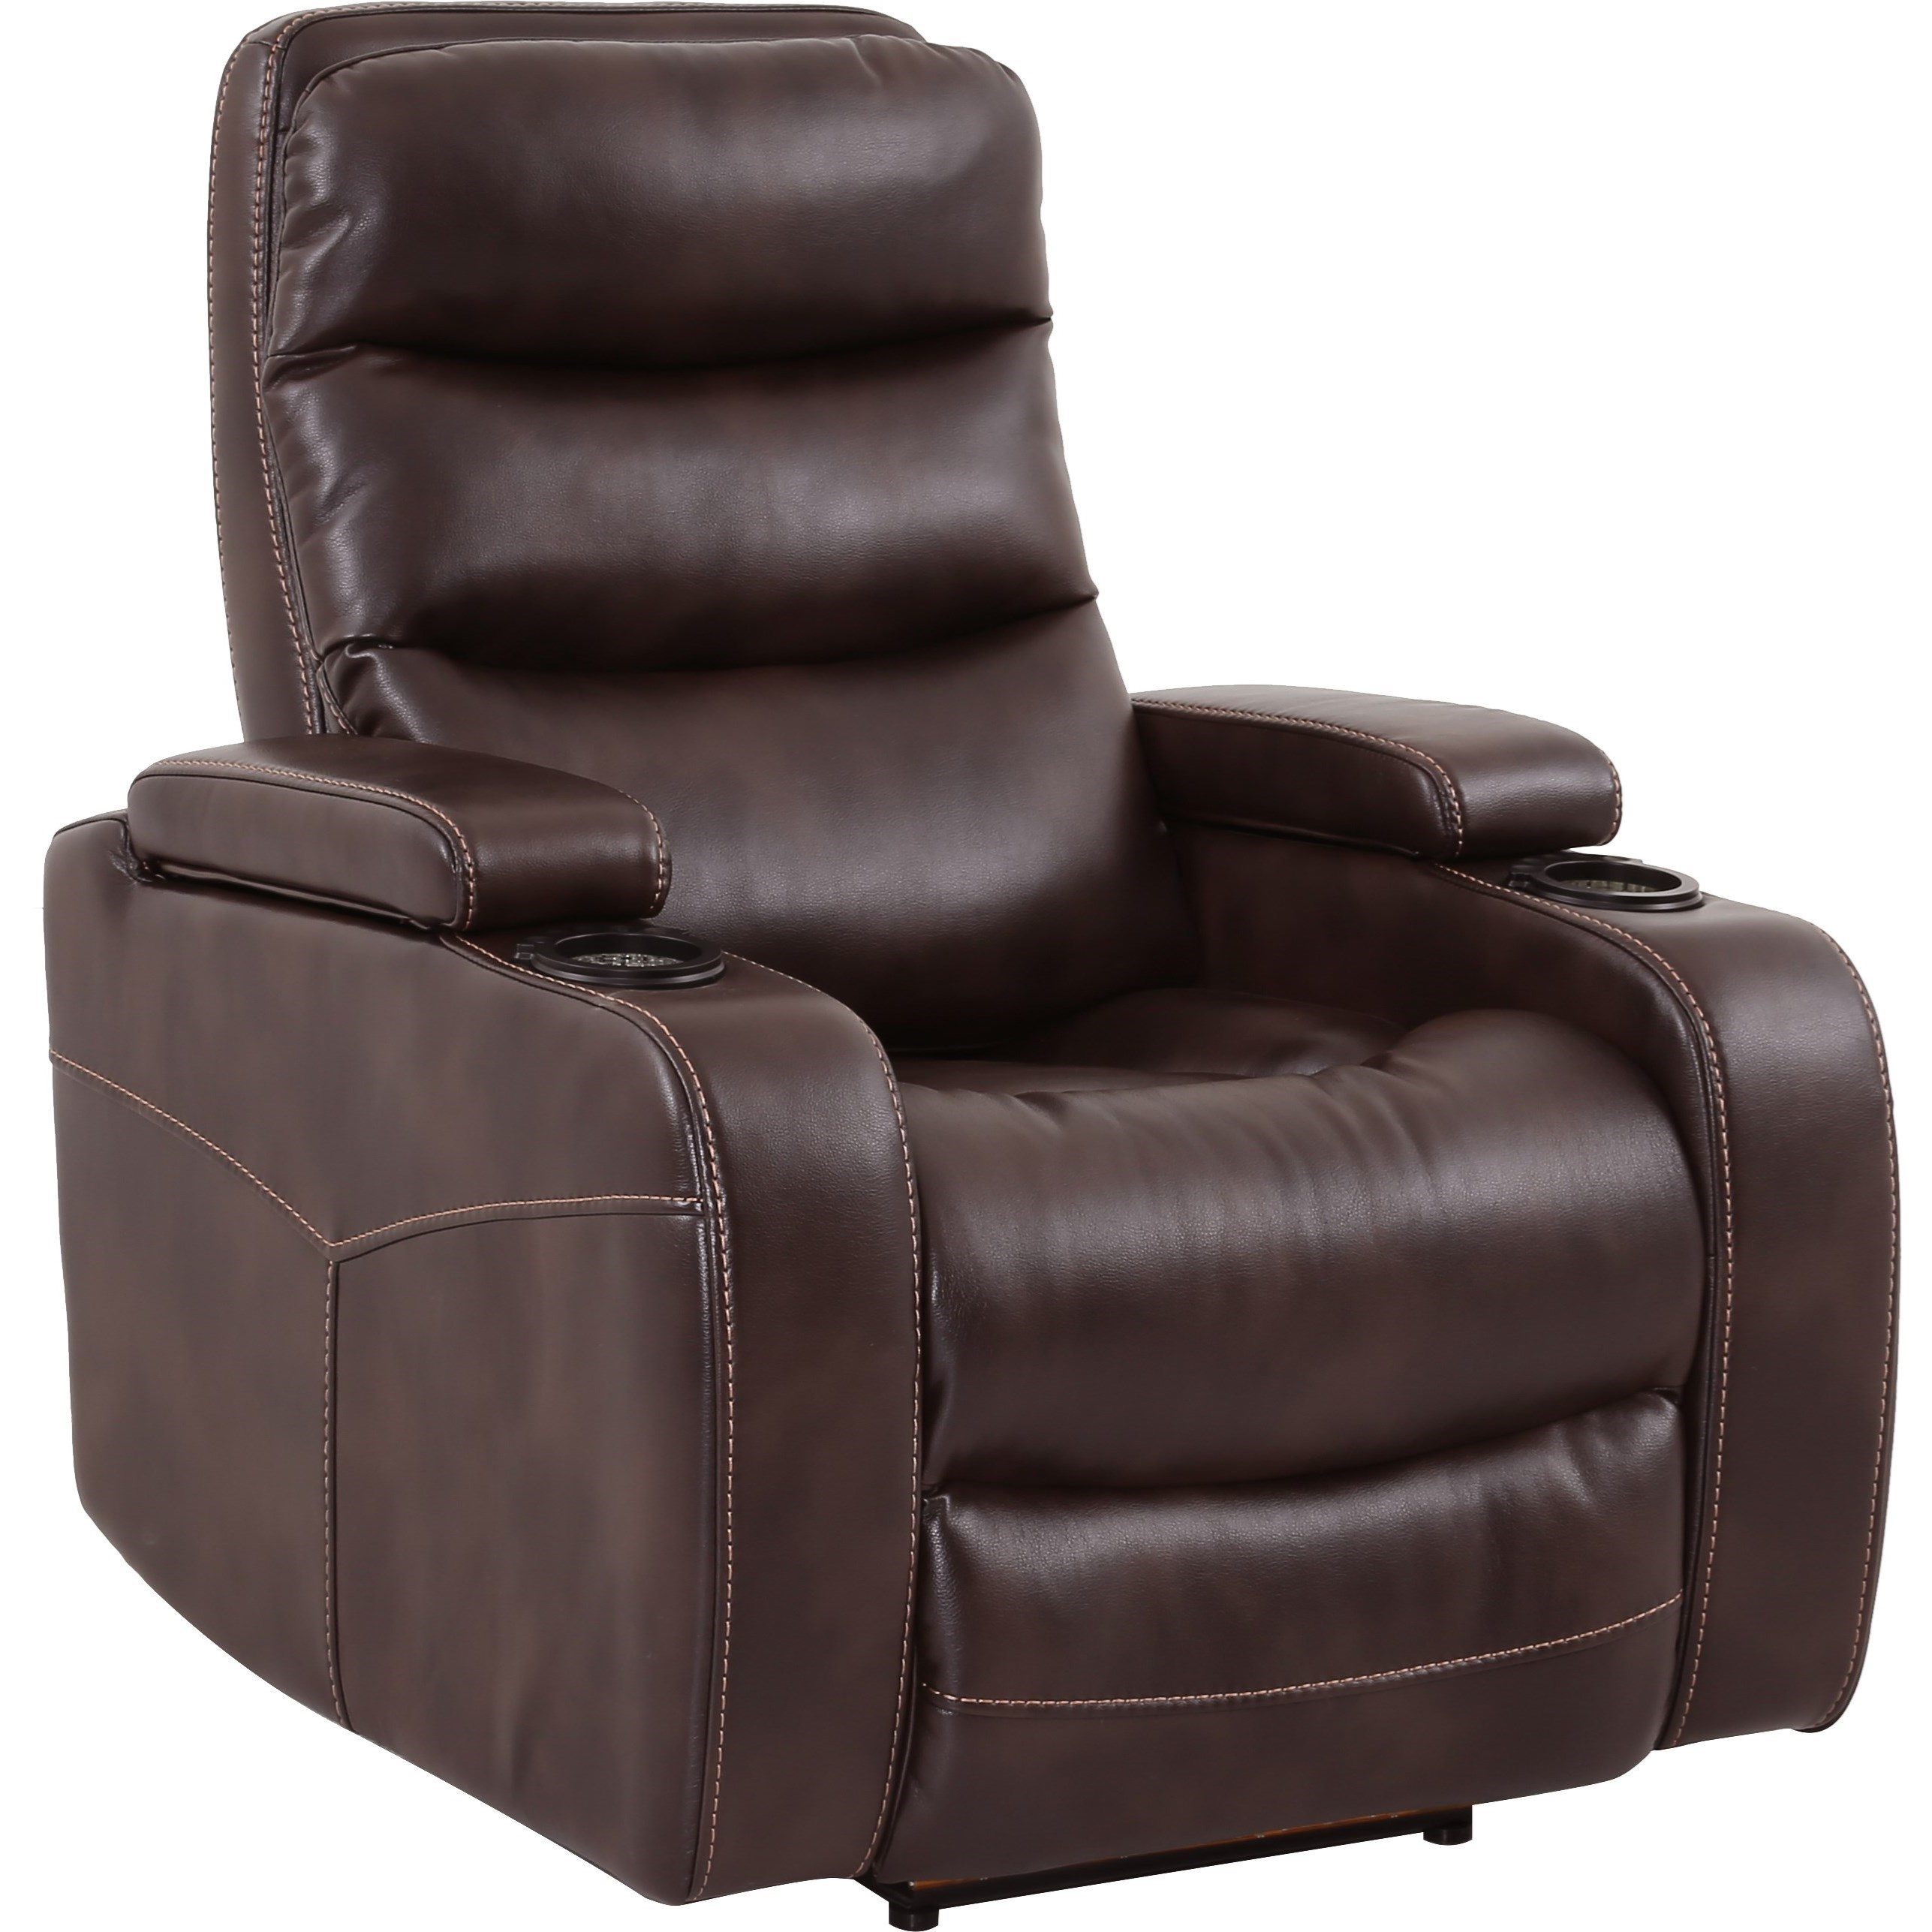 theater chairs with cup holders plastic beach chaise lounge parker living genesis mgen 812p tru contemporary home